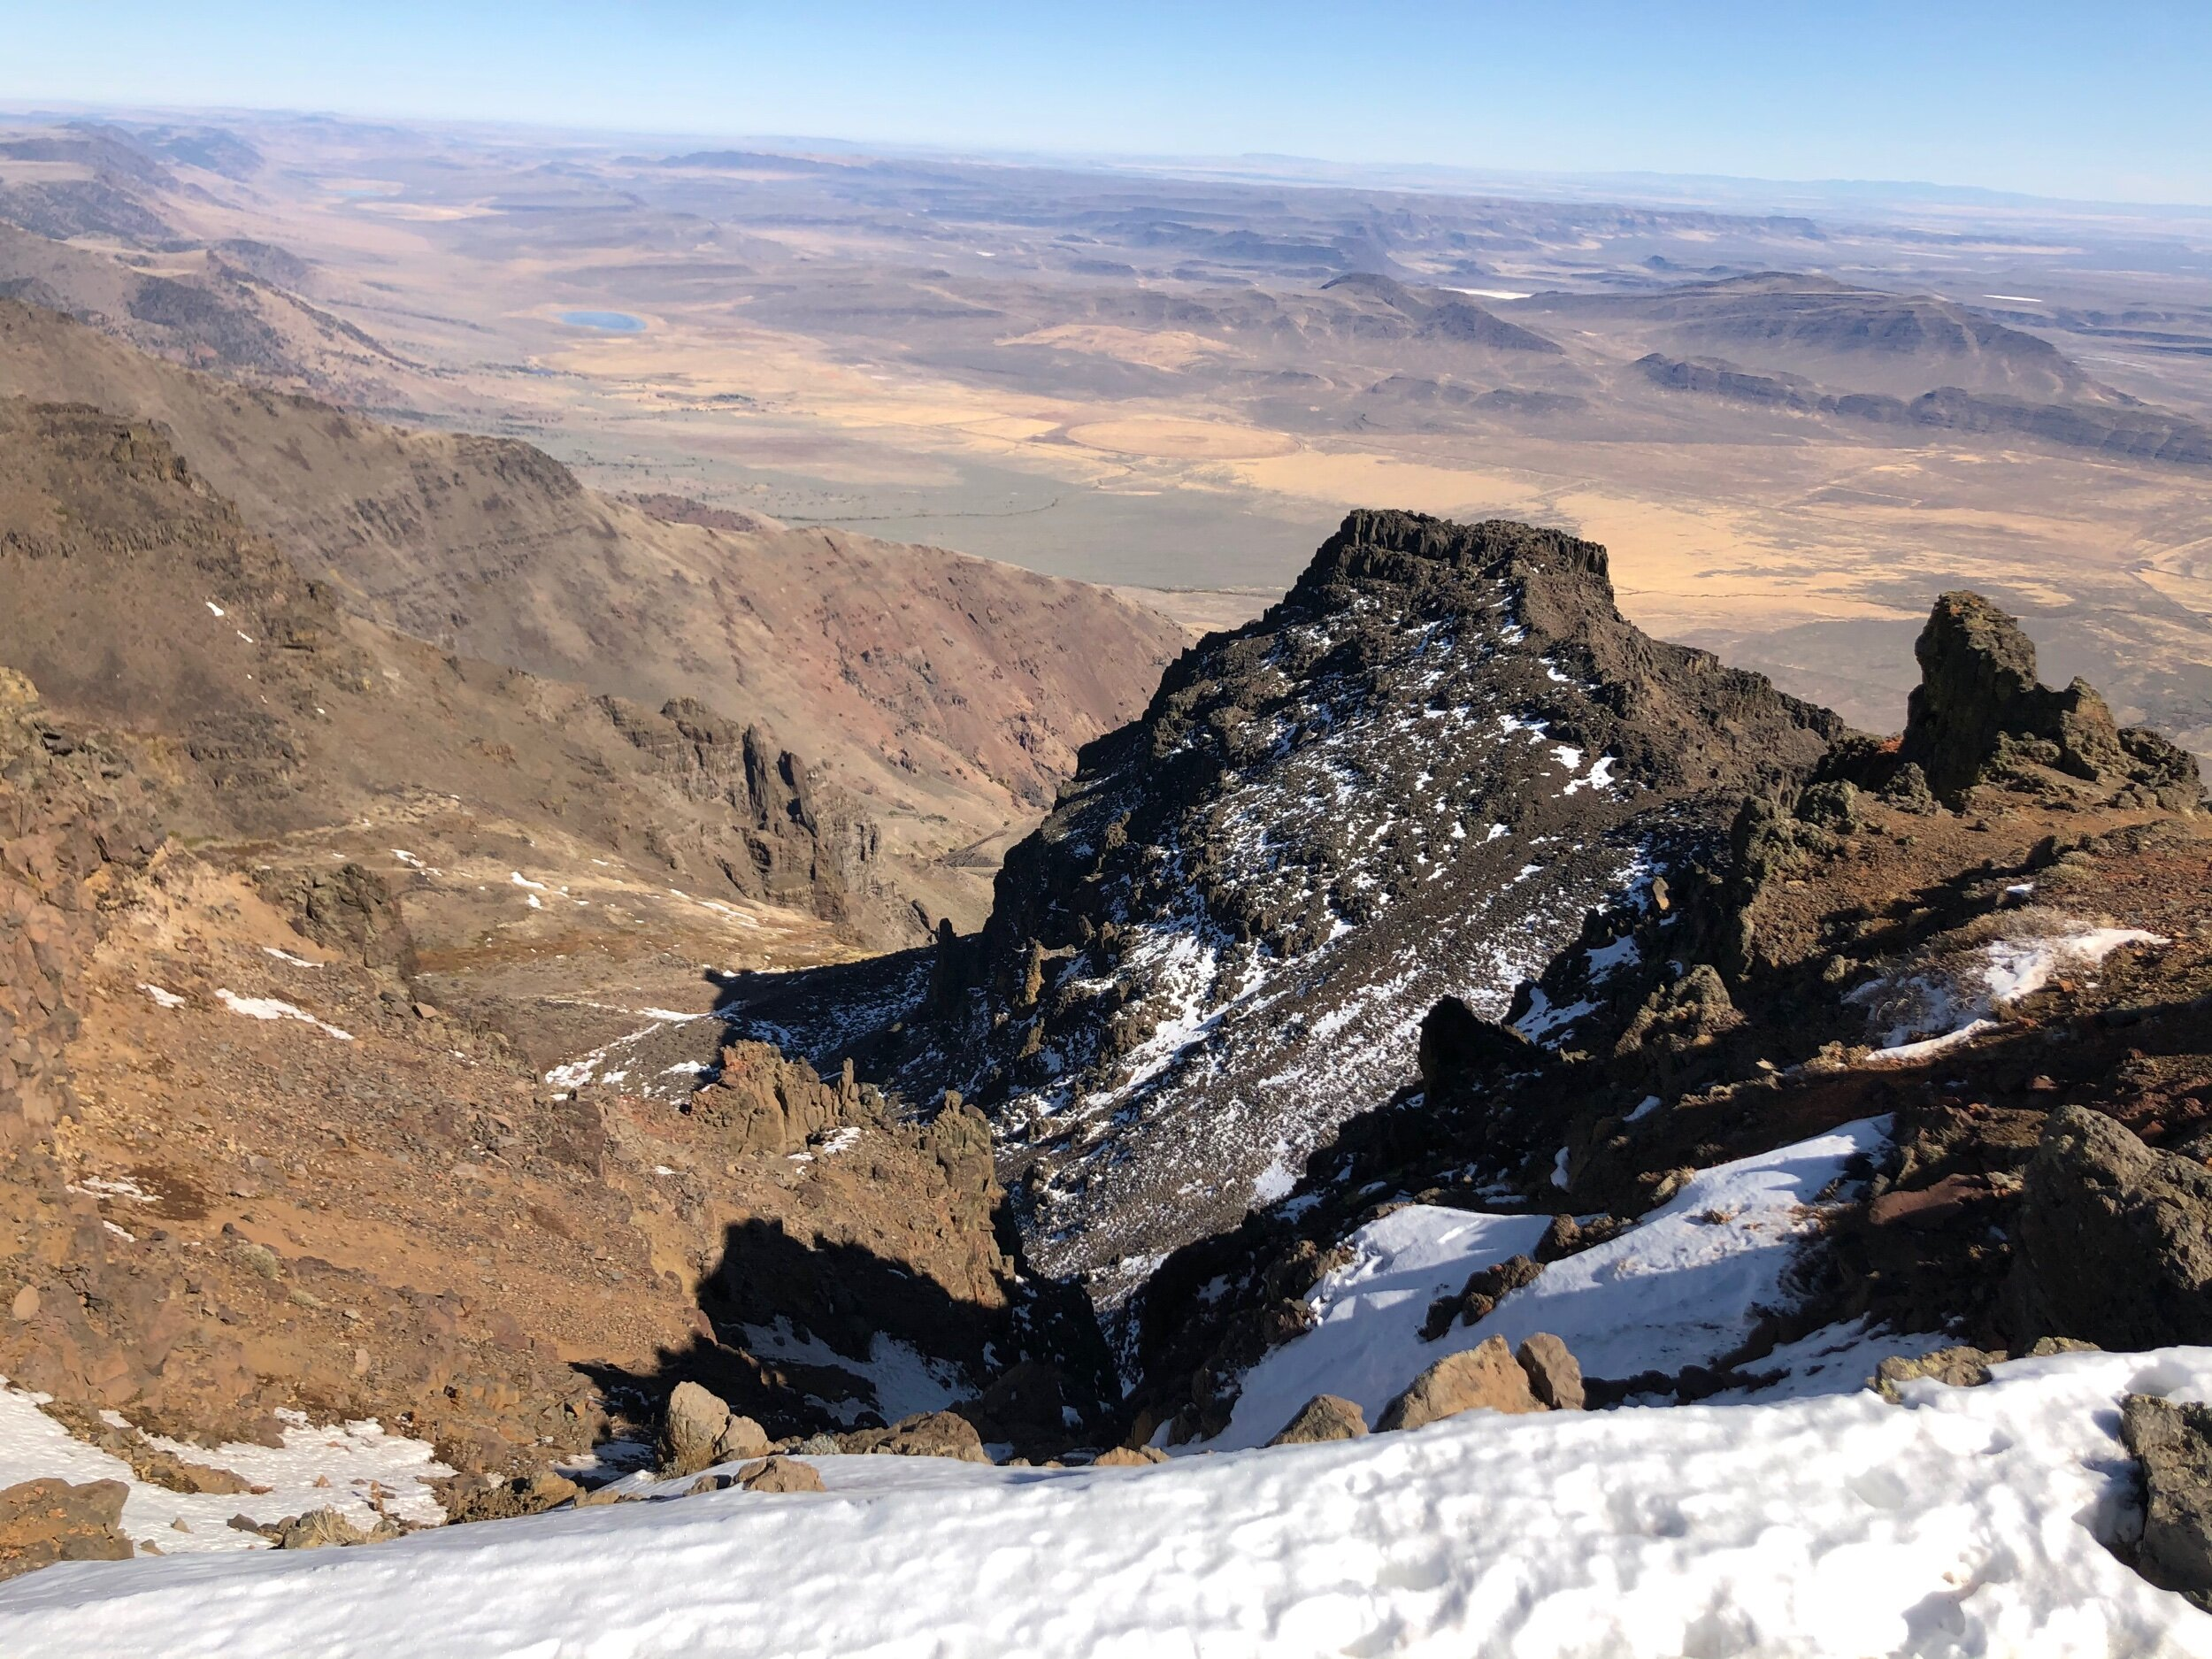 View toward Alford Desert from top of Steens Mountain.